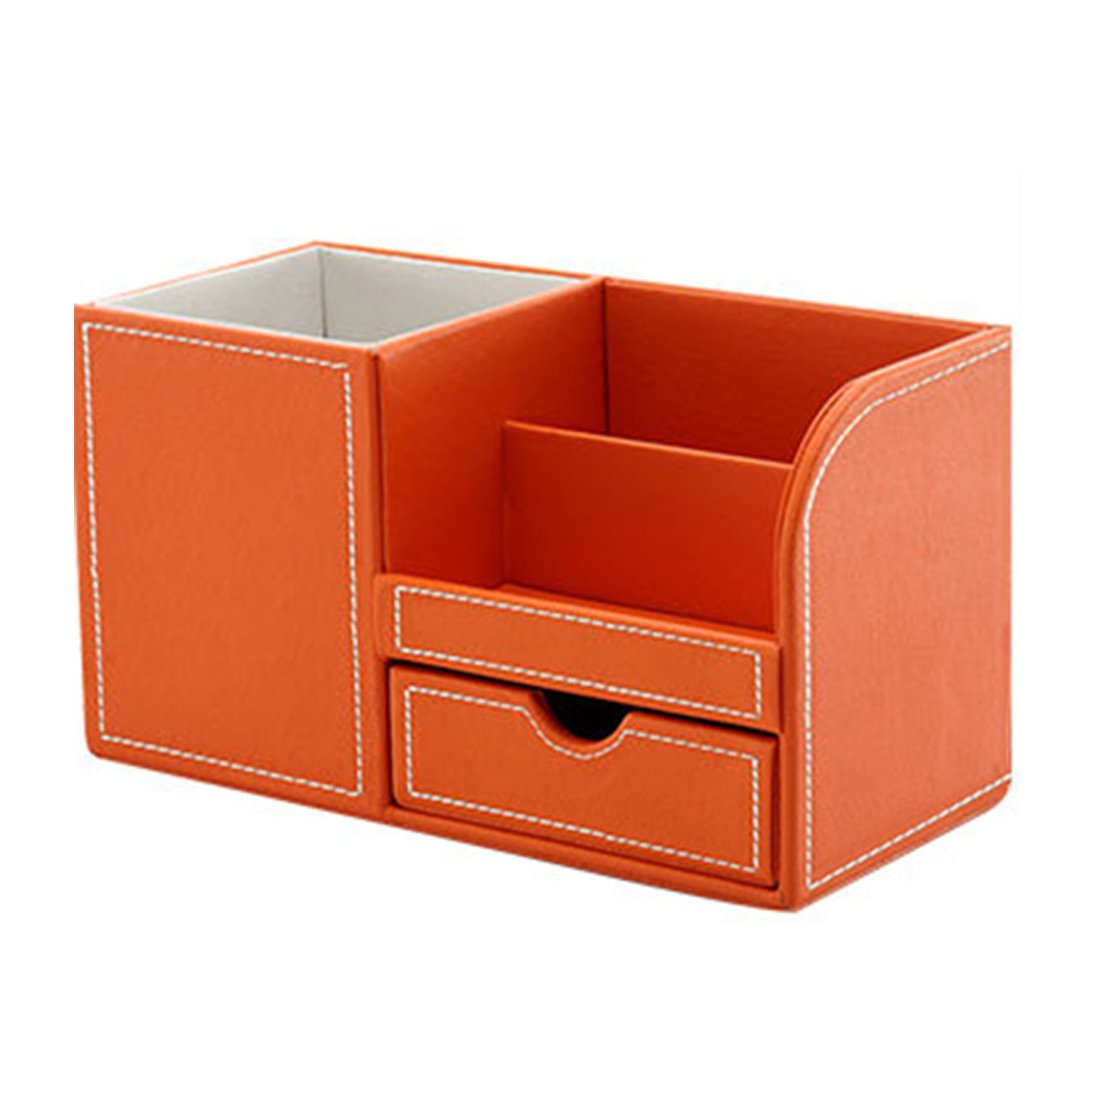 Multi-functional Pencil Holder, Zubita Office Desk Organizer PU Leather and Wood Business Cards Holder and Pen Container Desk Supplies Organizer for Pens Pencils Mobile Phone and Cards ( Orange )